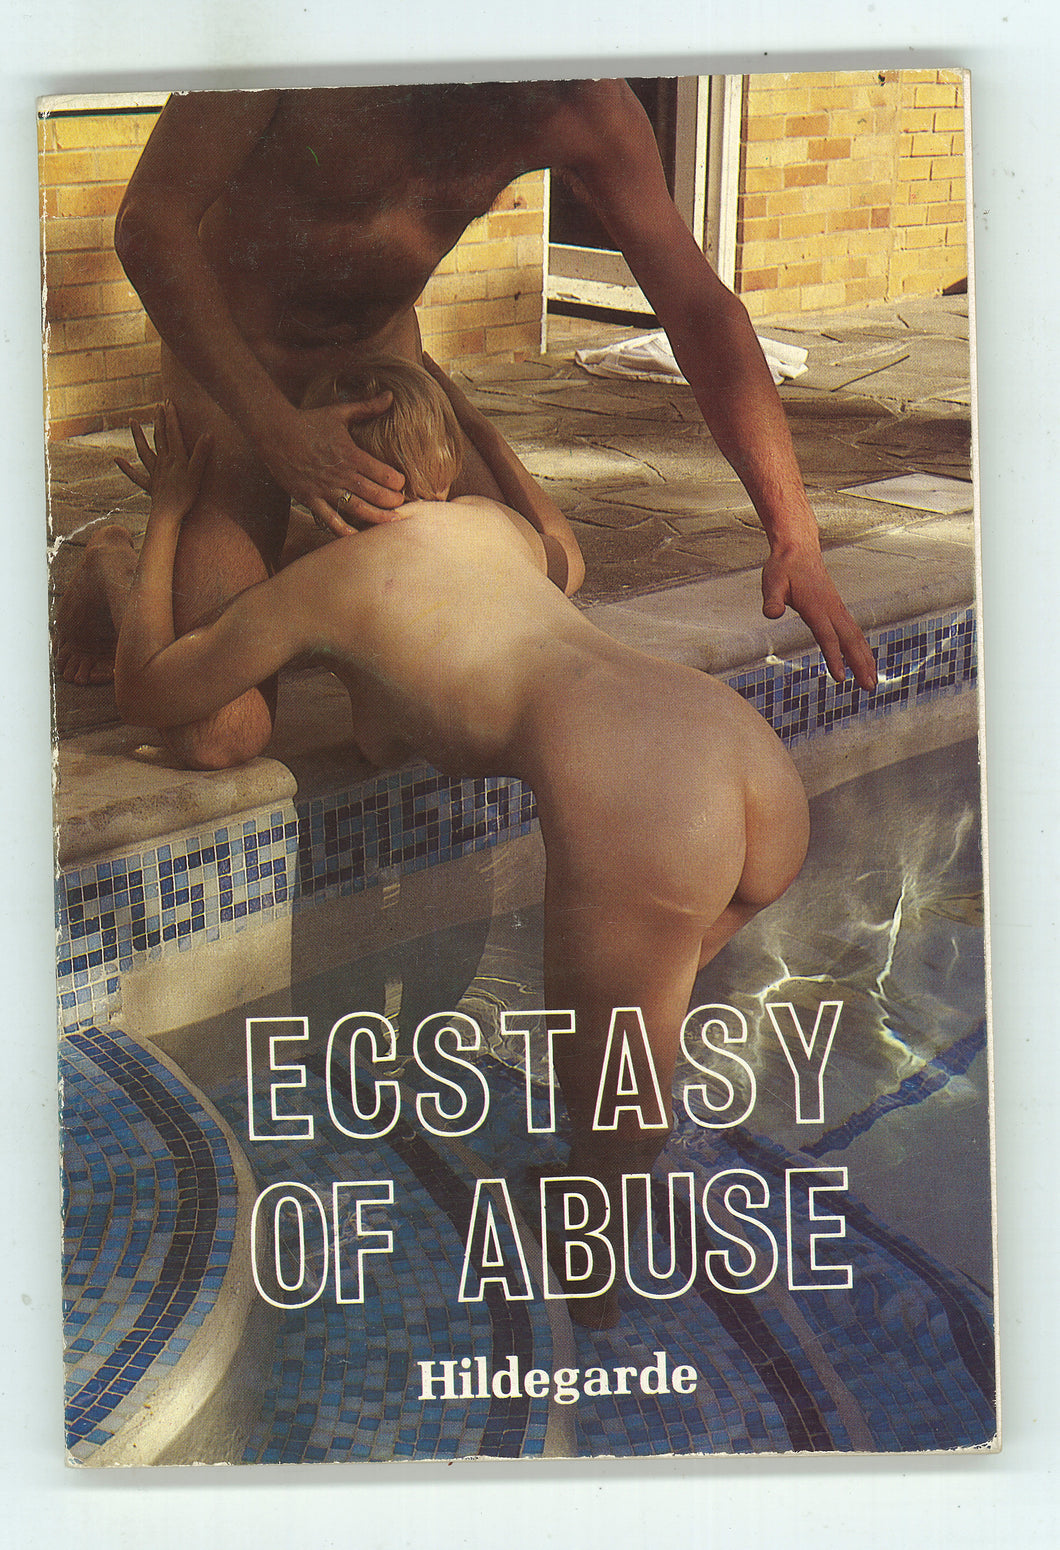 Ecstasy of Abuse